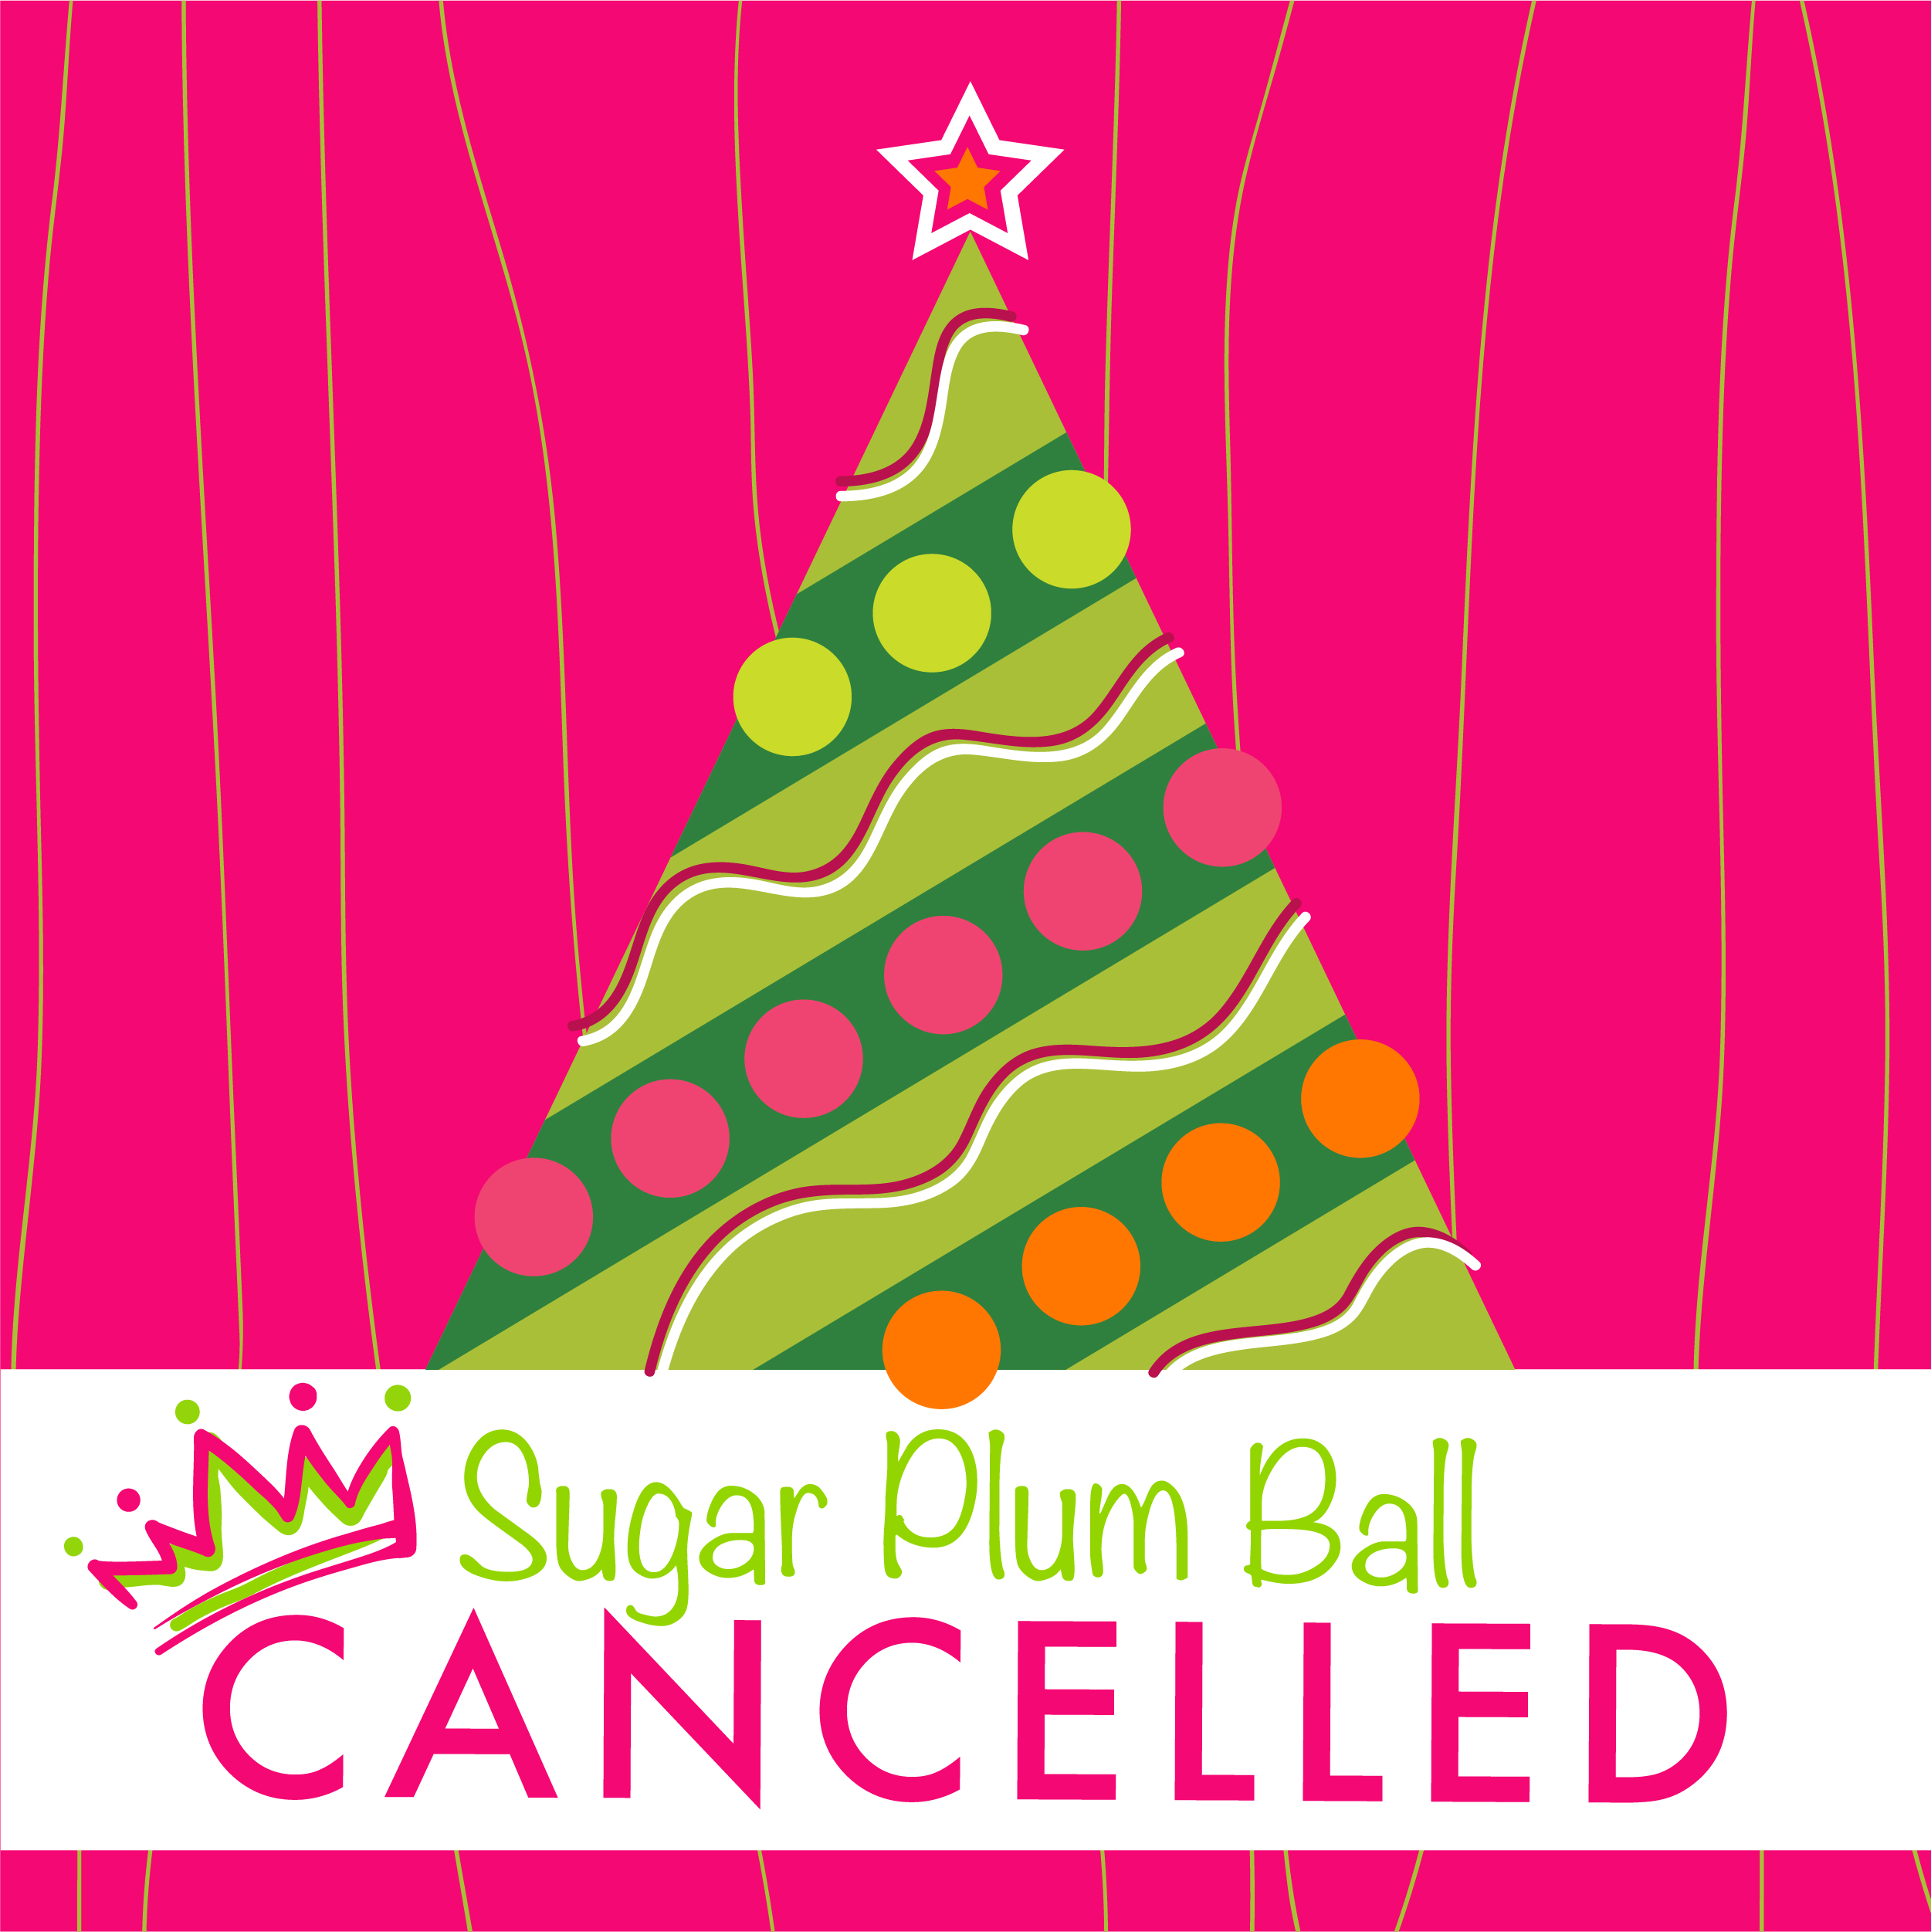 2021 Sugar Plum Ball Canceled For Health and Safety Concerns